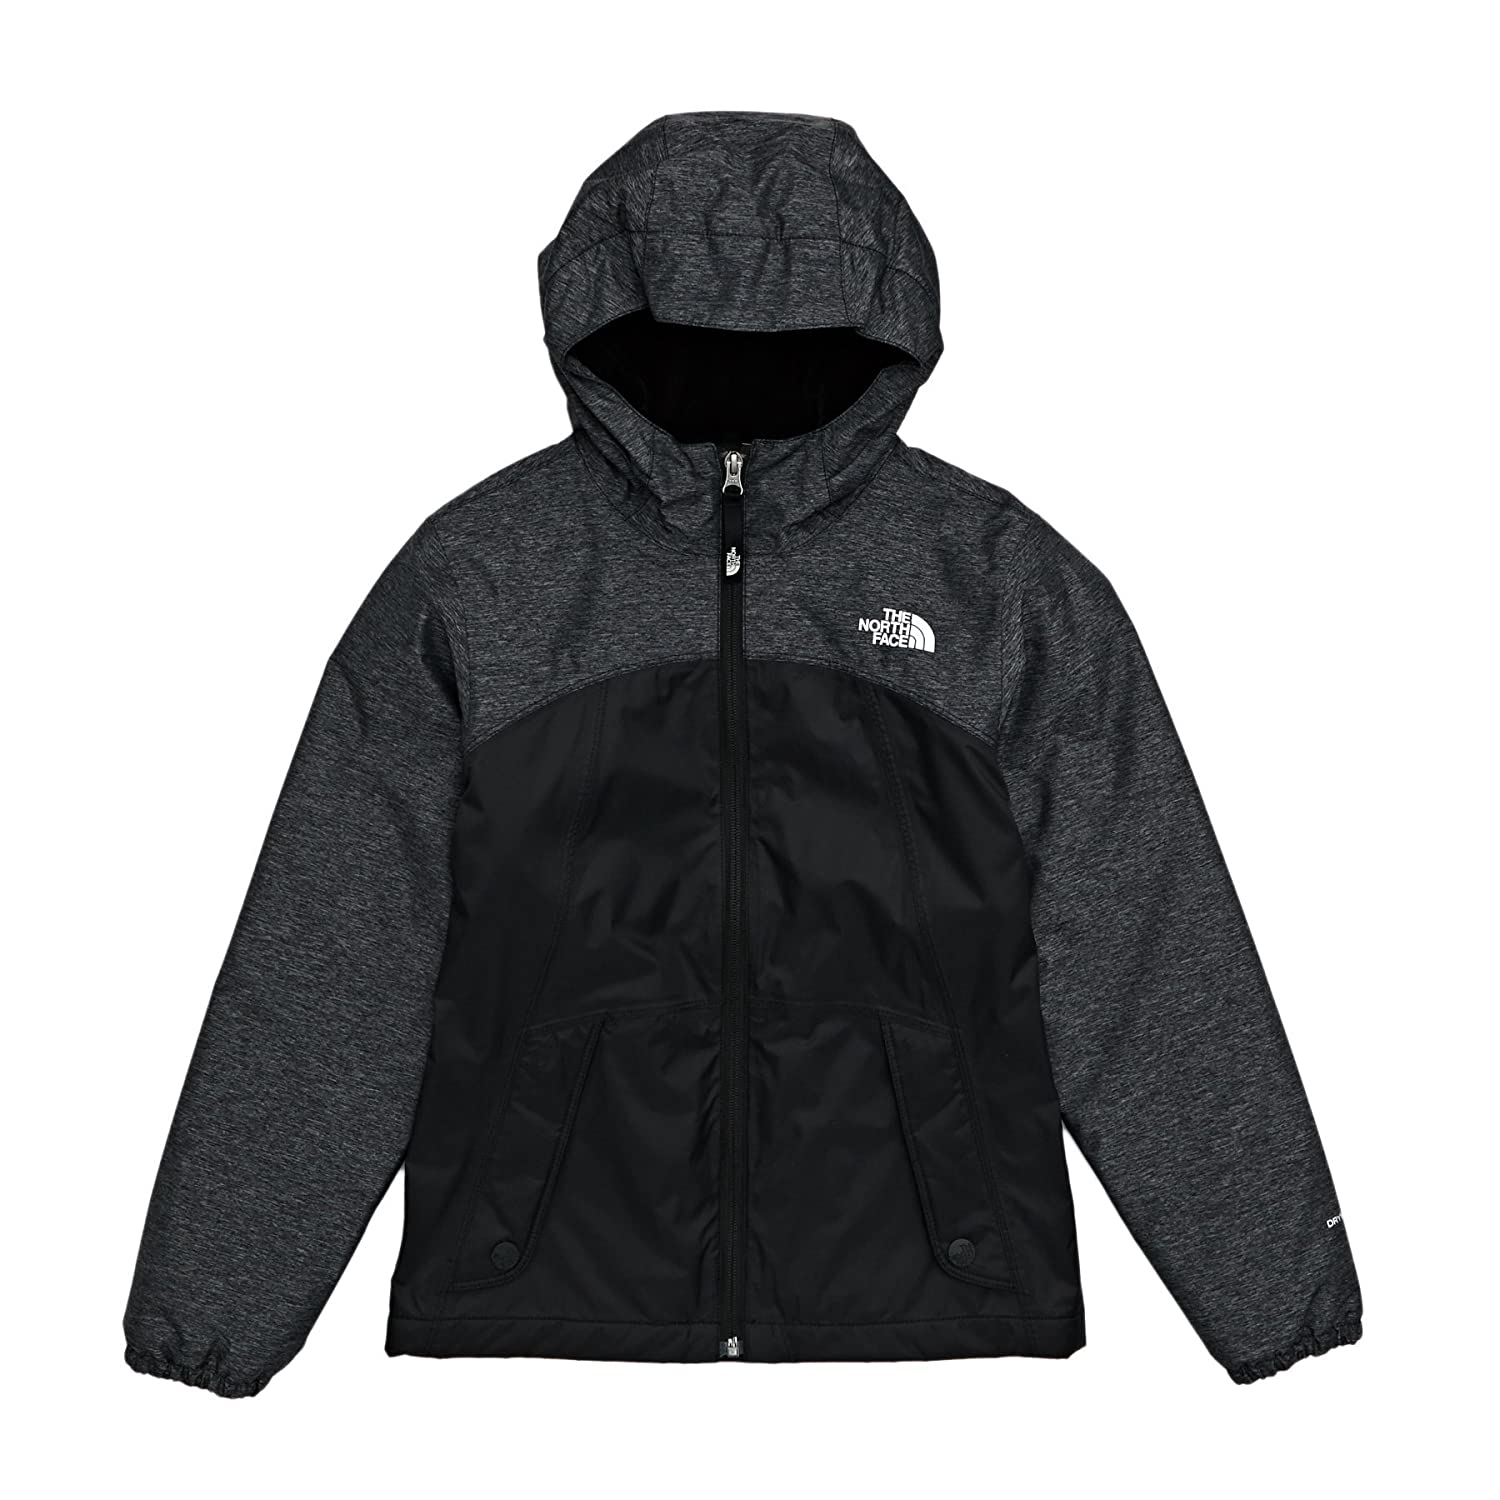 The North Face, G Warm Storm, Giacca, Bambina T934UXJK3